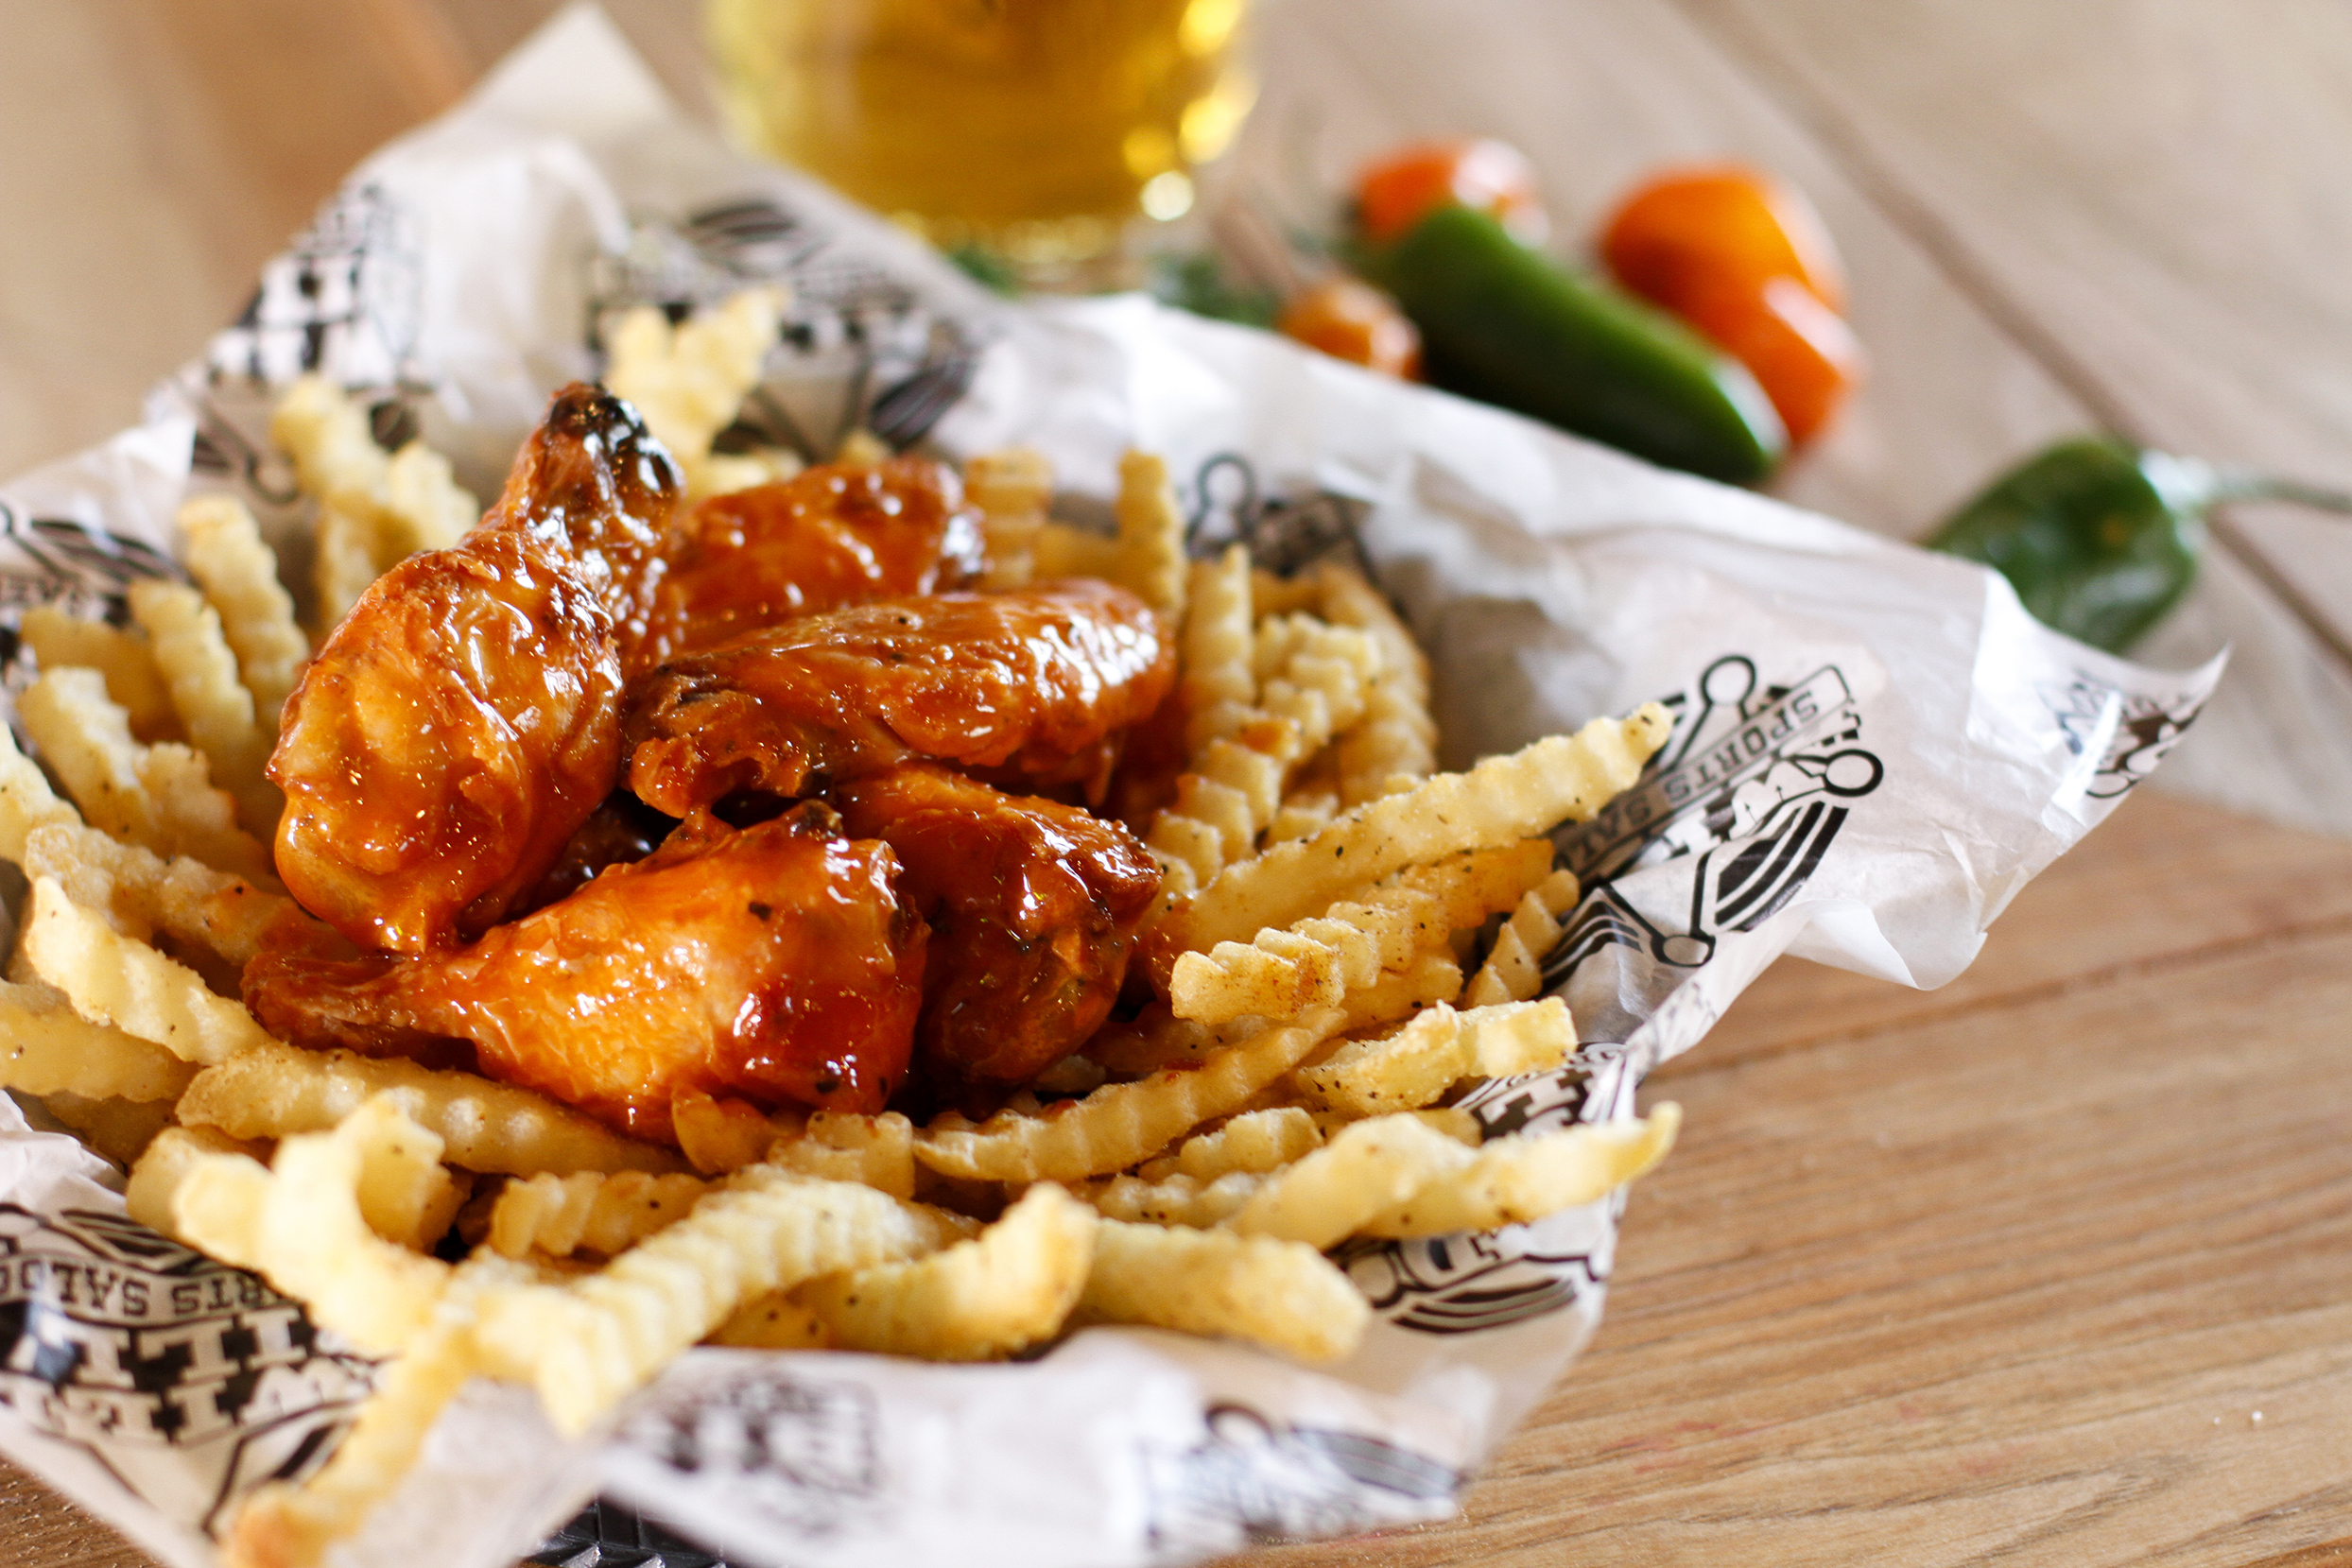 Original wings with fries